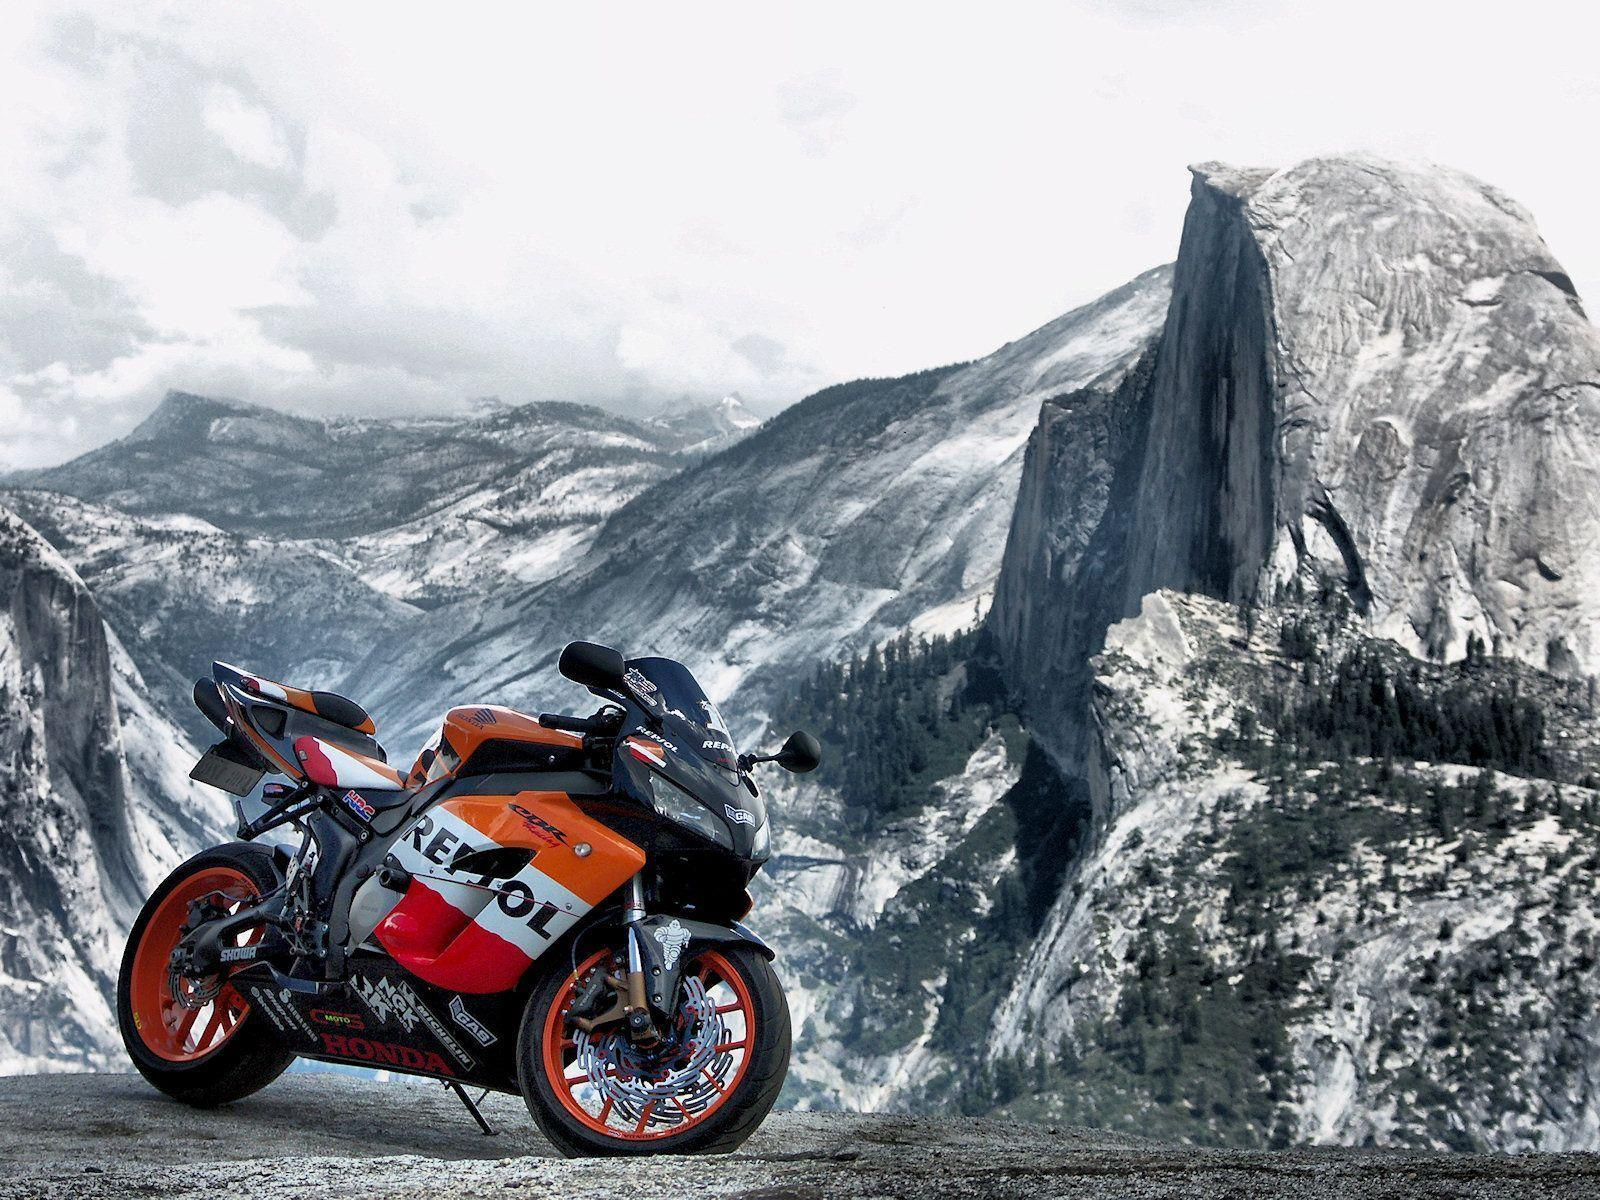 Honda Repsol Wallpaper Motorcycle: Cbr1000rr Repsol 2017 HD Wallpapers